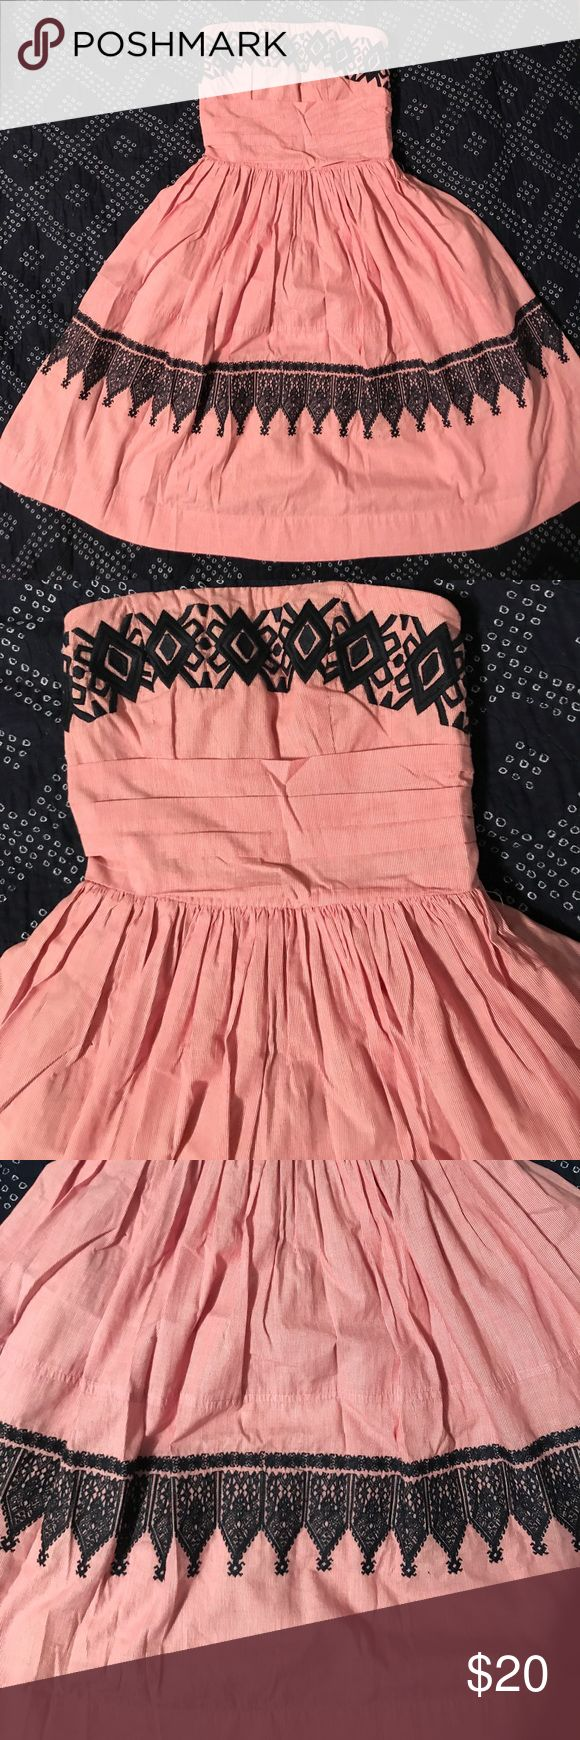 Strapless sundress XS Strapless red and white stripe sundress with navy embroidery, hits at knee, worn once EUC THML Dresses Strapless